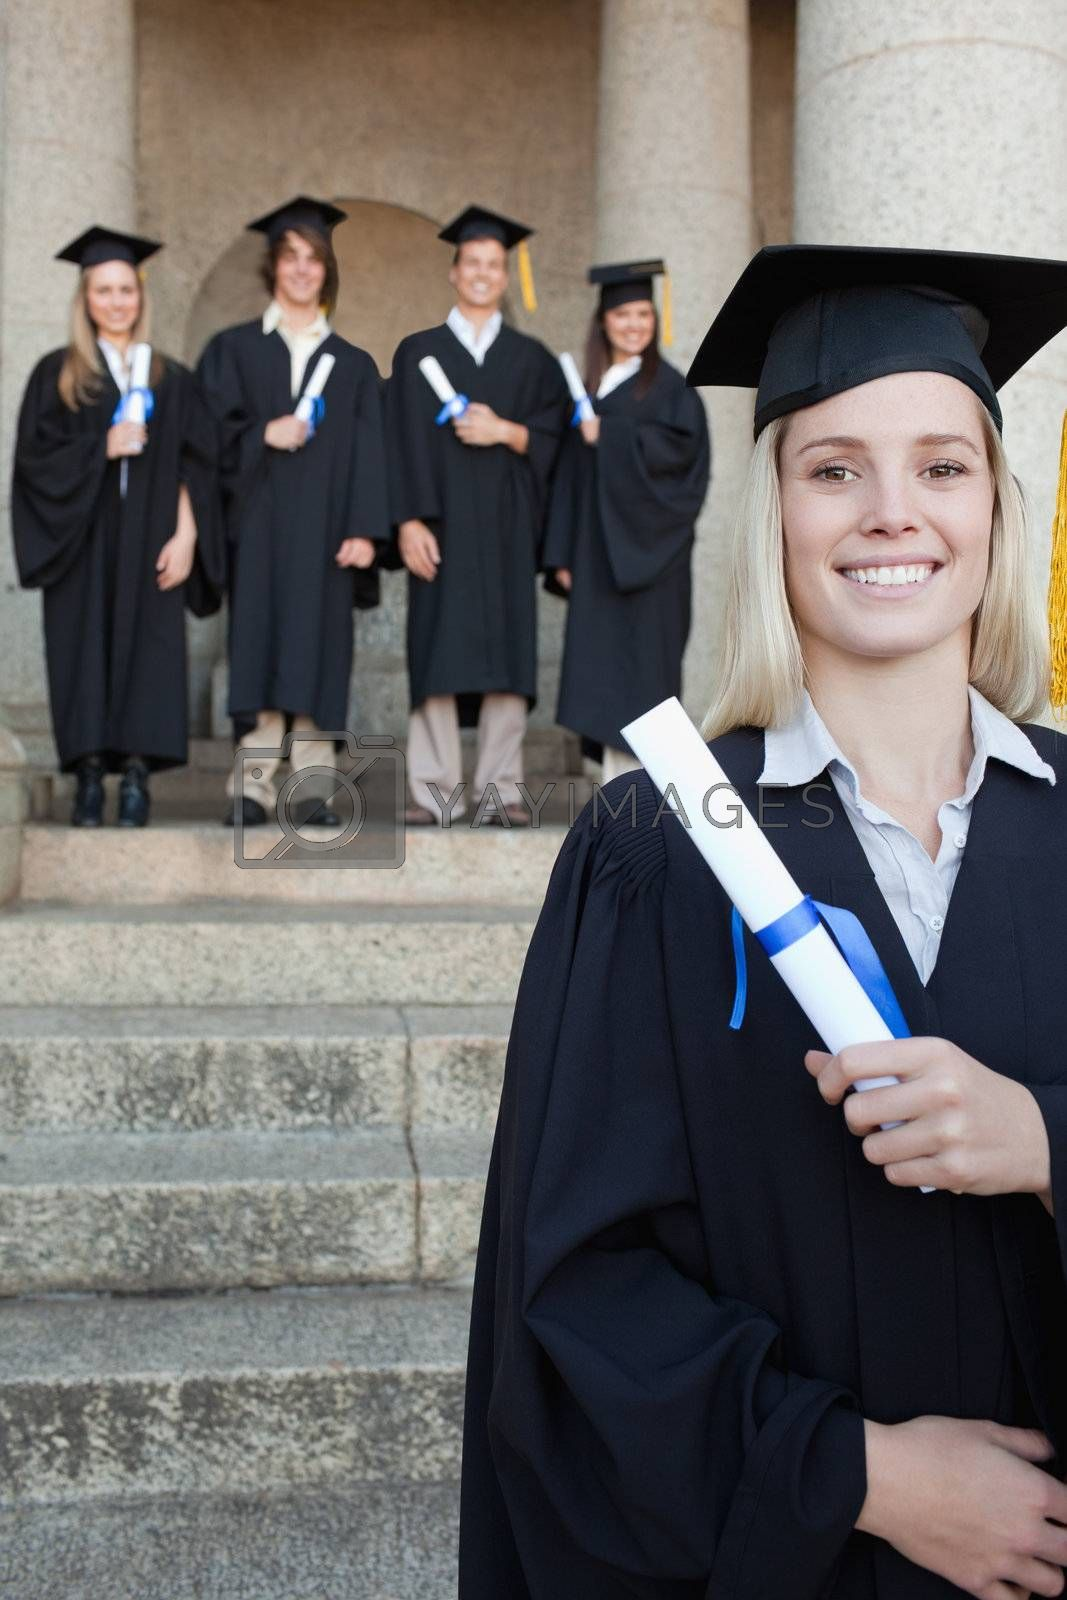 Close-up of a blonde graduate smiling with her friends in background in front of the university